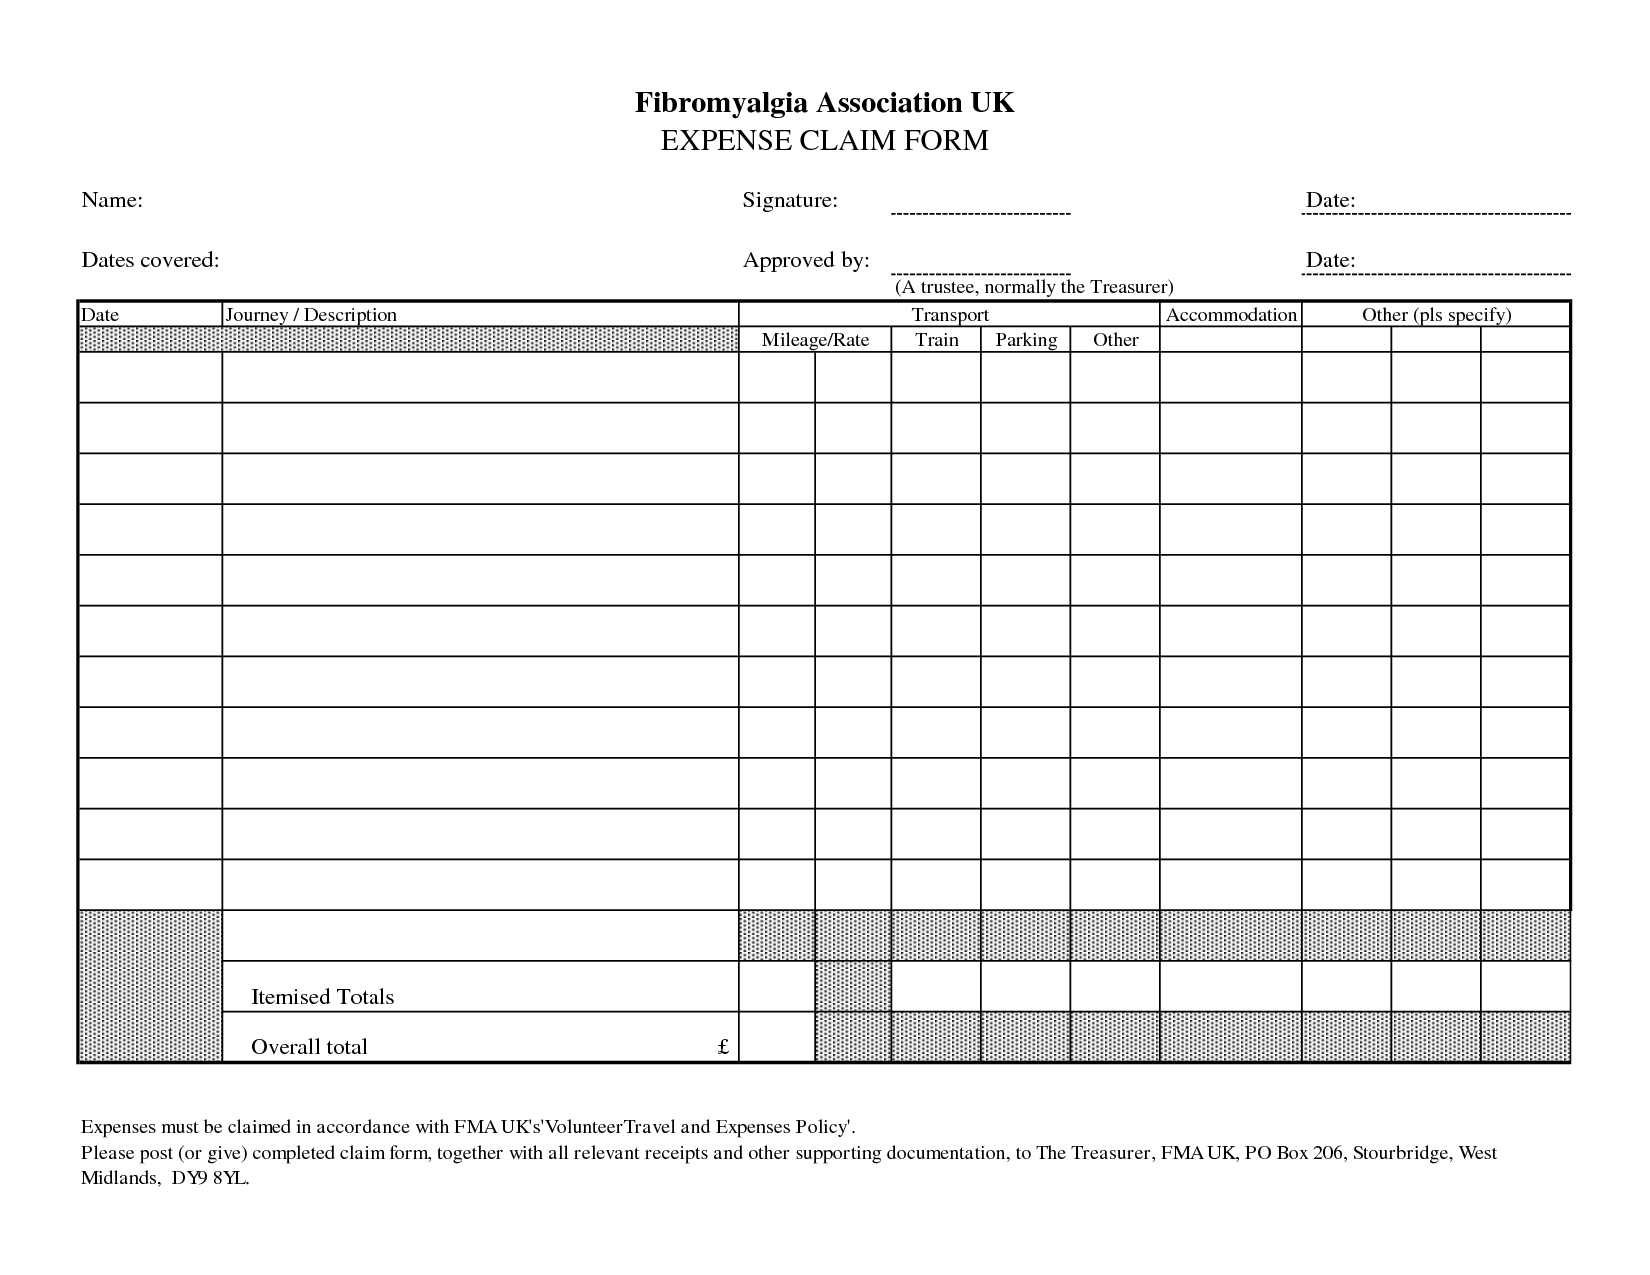 Bookkeeping Spreadsheet Using Microsoft Excel Accounting Spreadsheet Template Spreadsheet Templates for Busines Spreadsheet Templates for Busines Accounting Website Templates